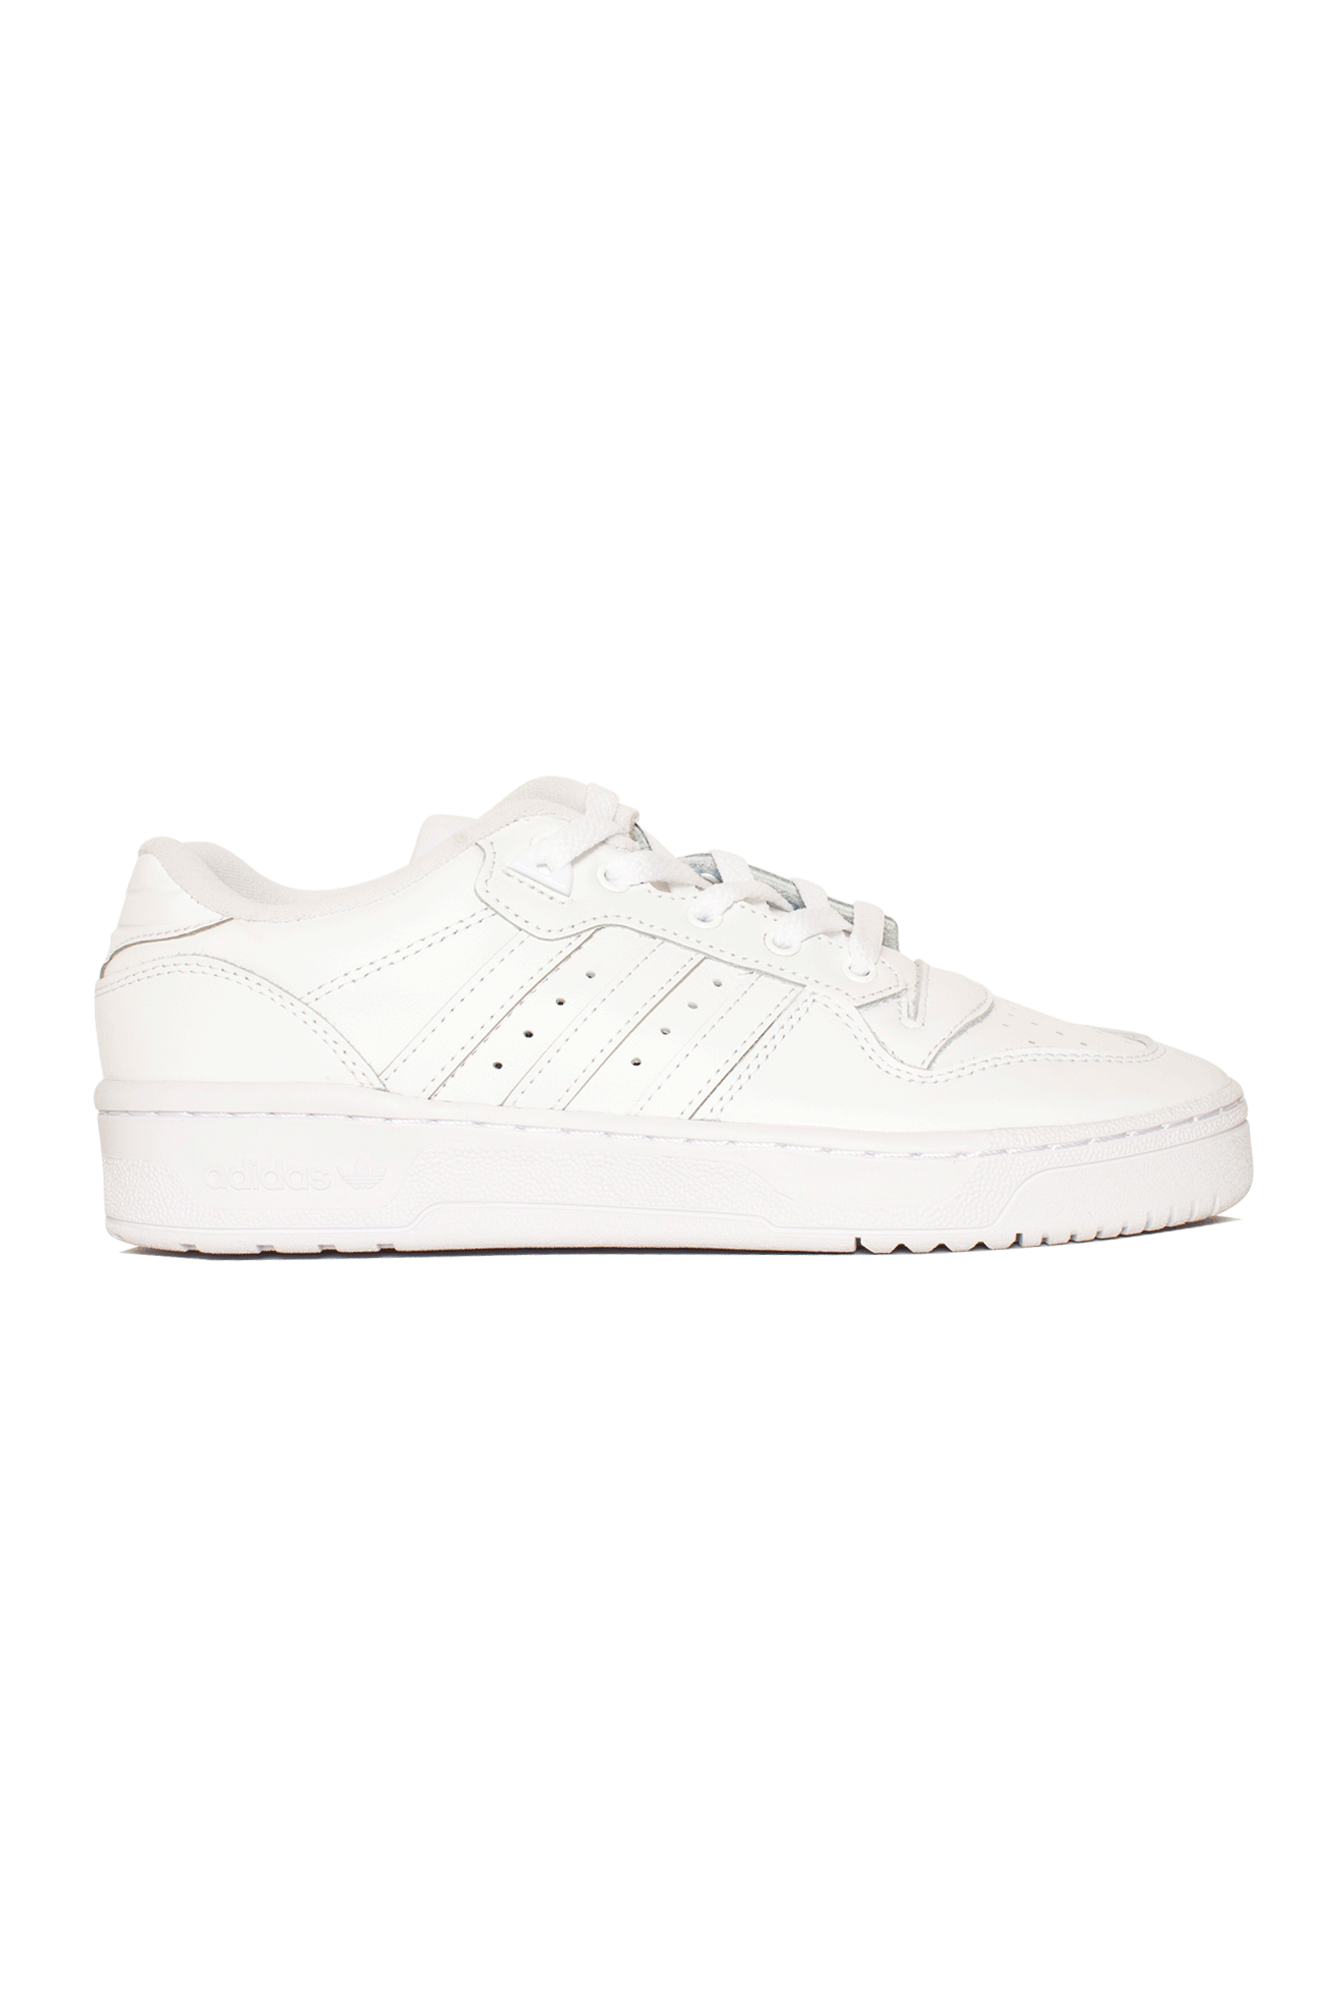 Adidas Originals Sneakers Rivalry Low Bianco EF8729#000#WHT#7 - One Block Down